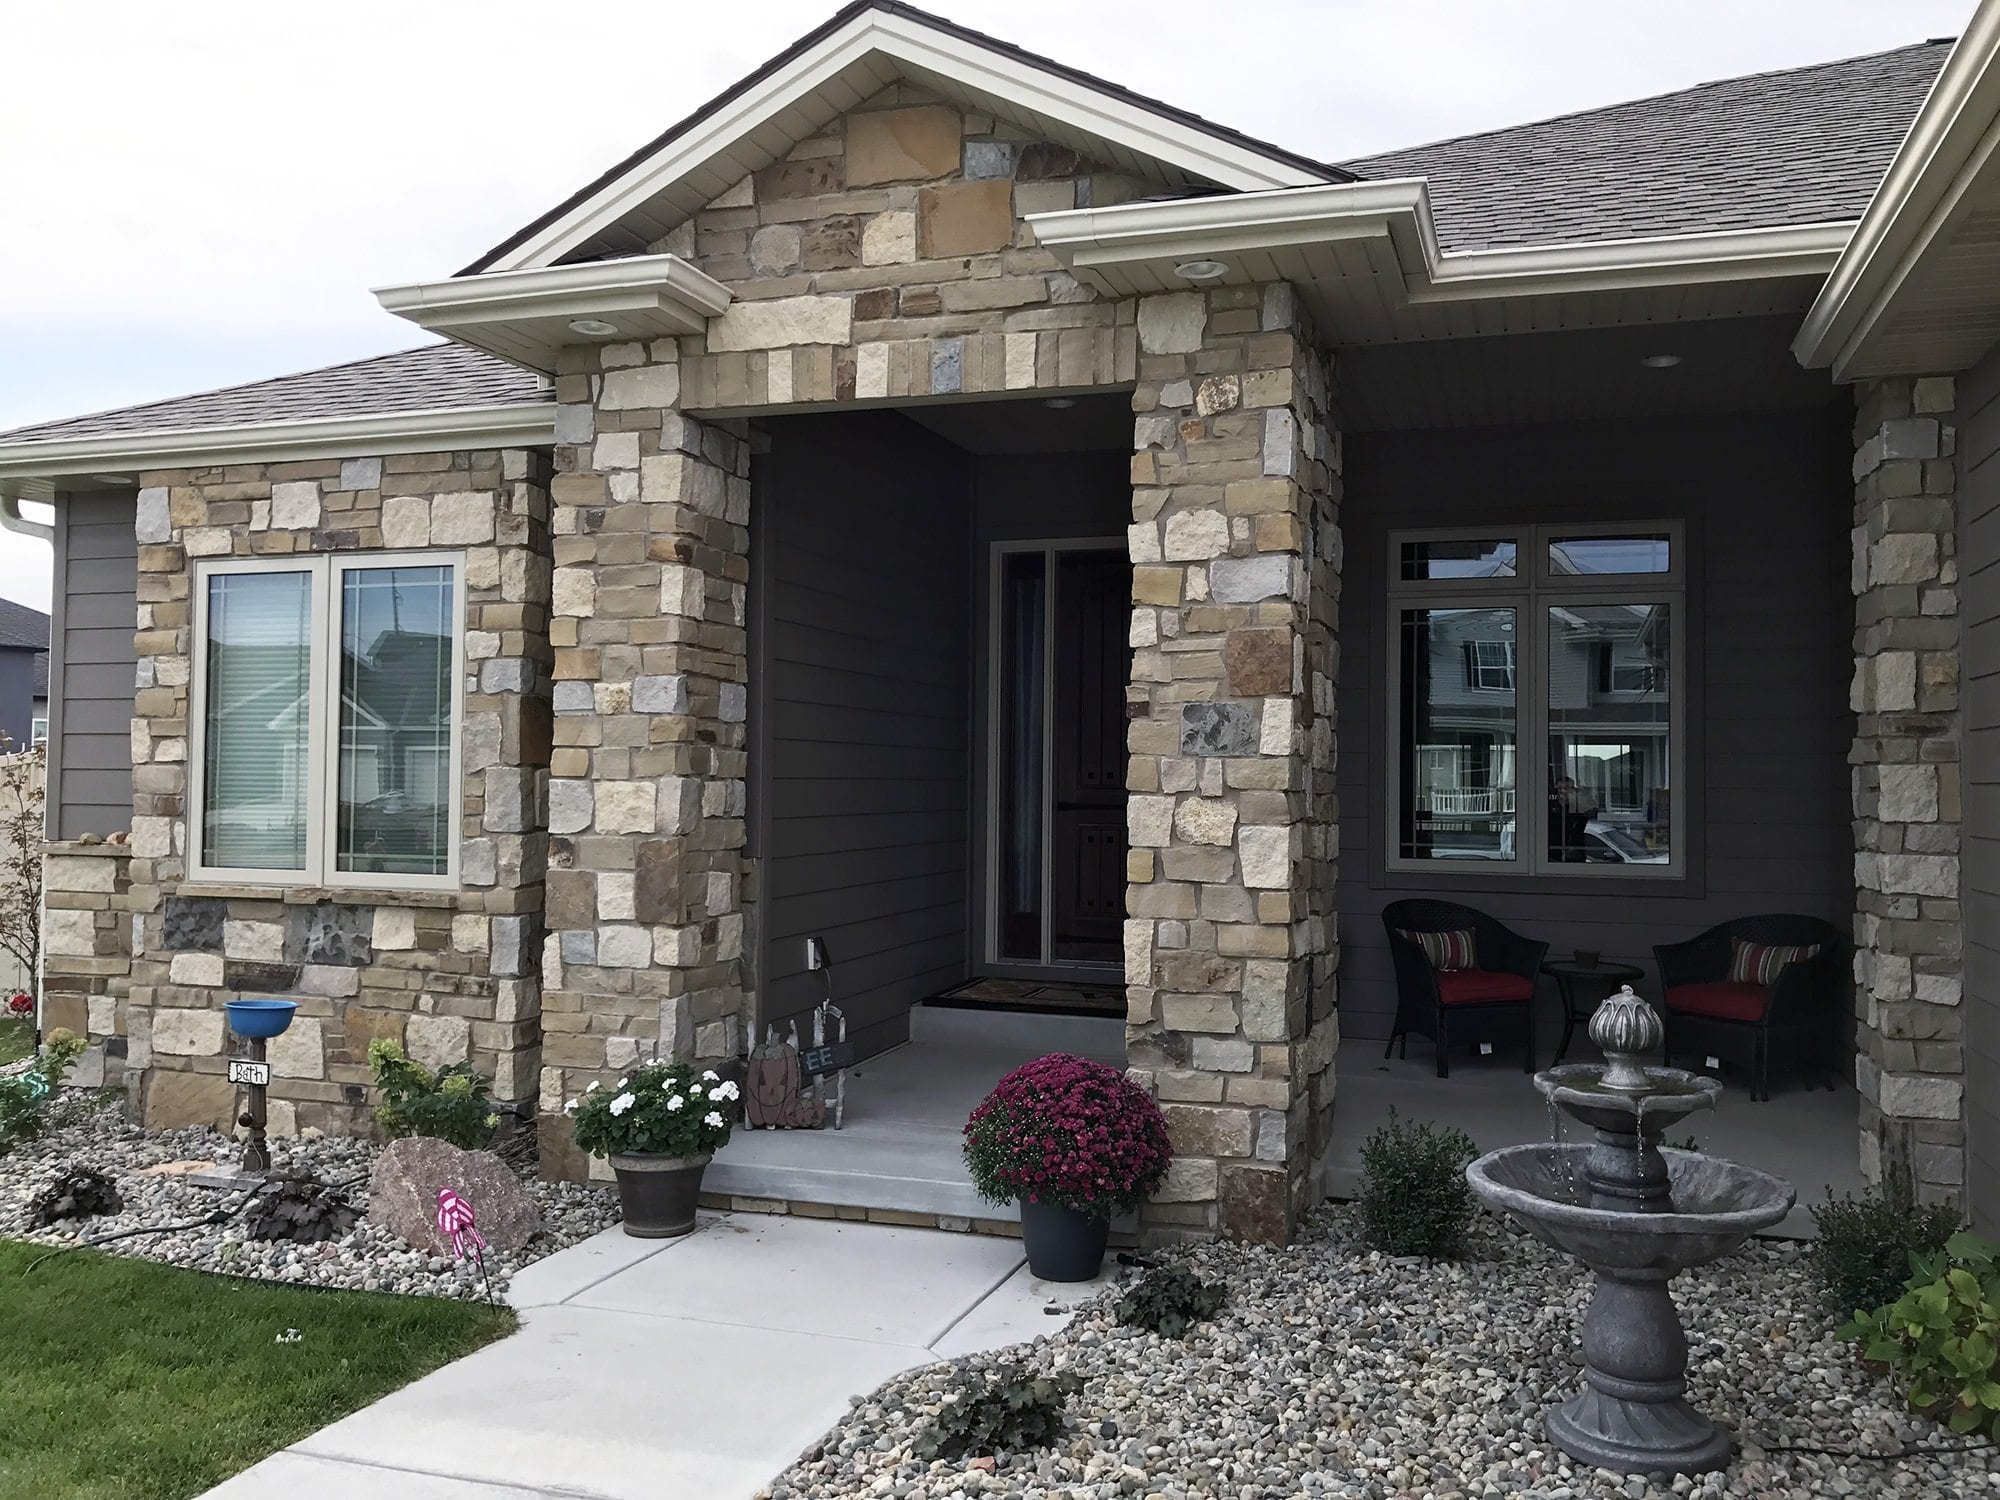 Factors in Choosing The Right Natural Stone For Your Home